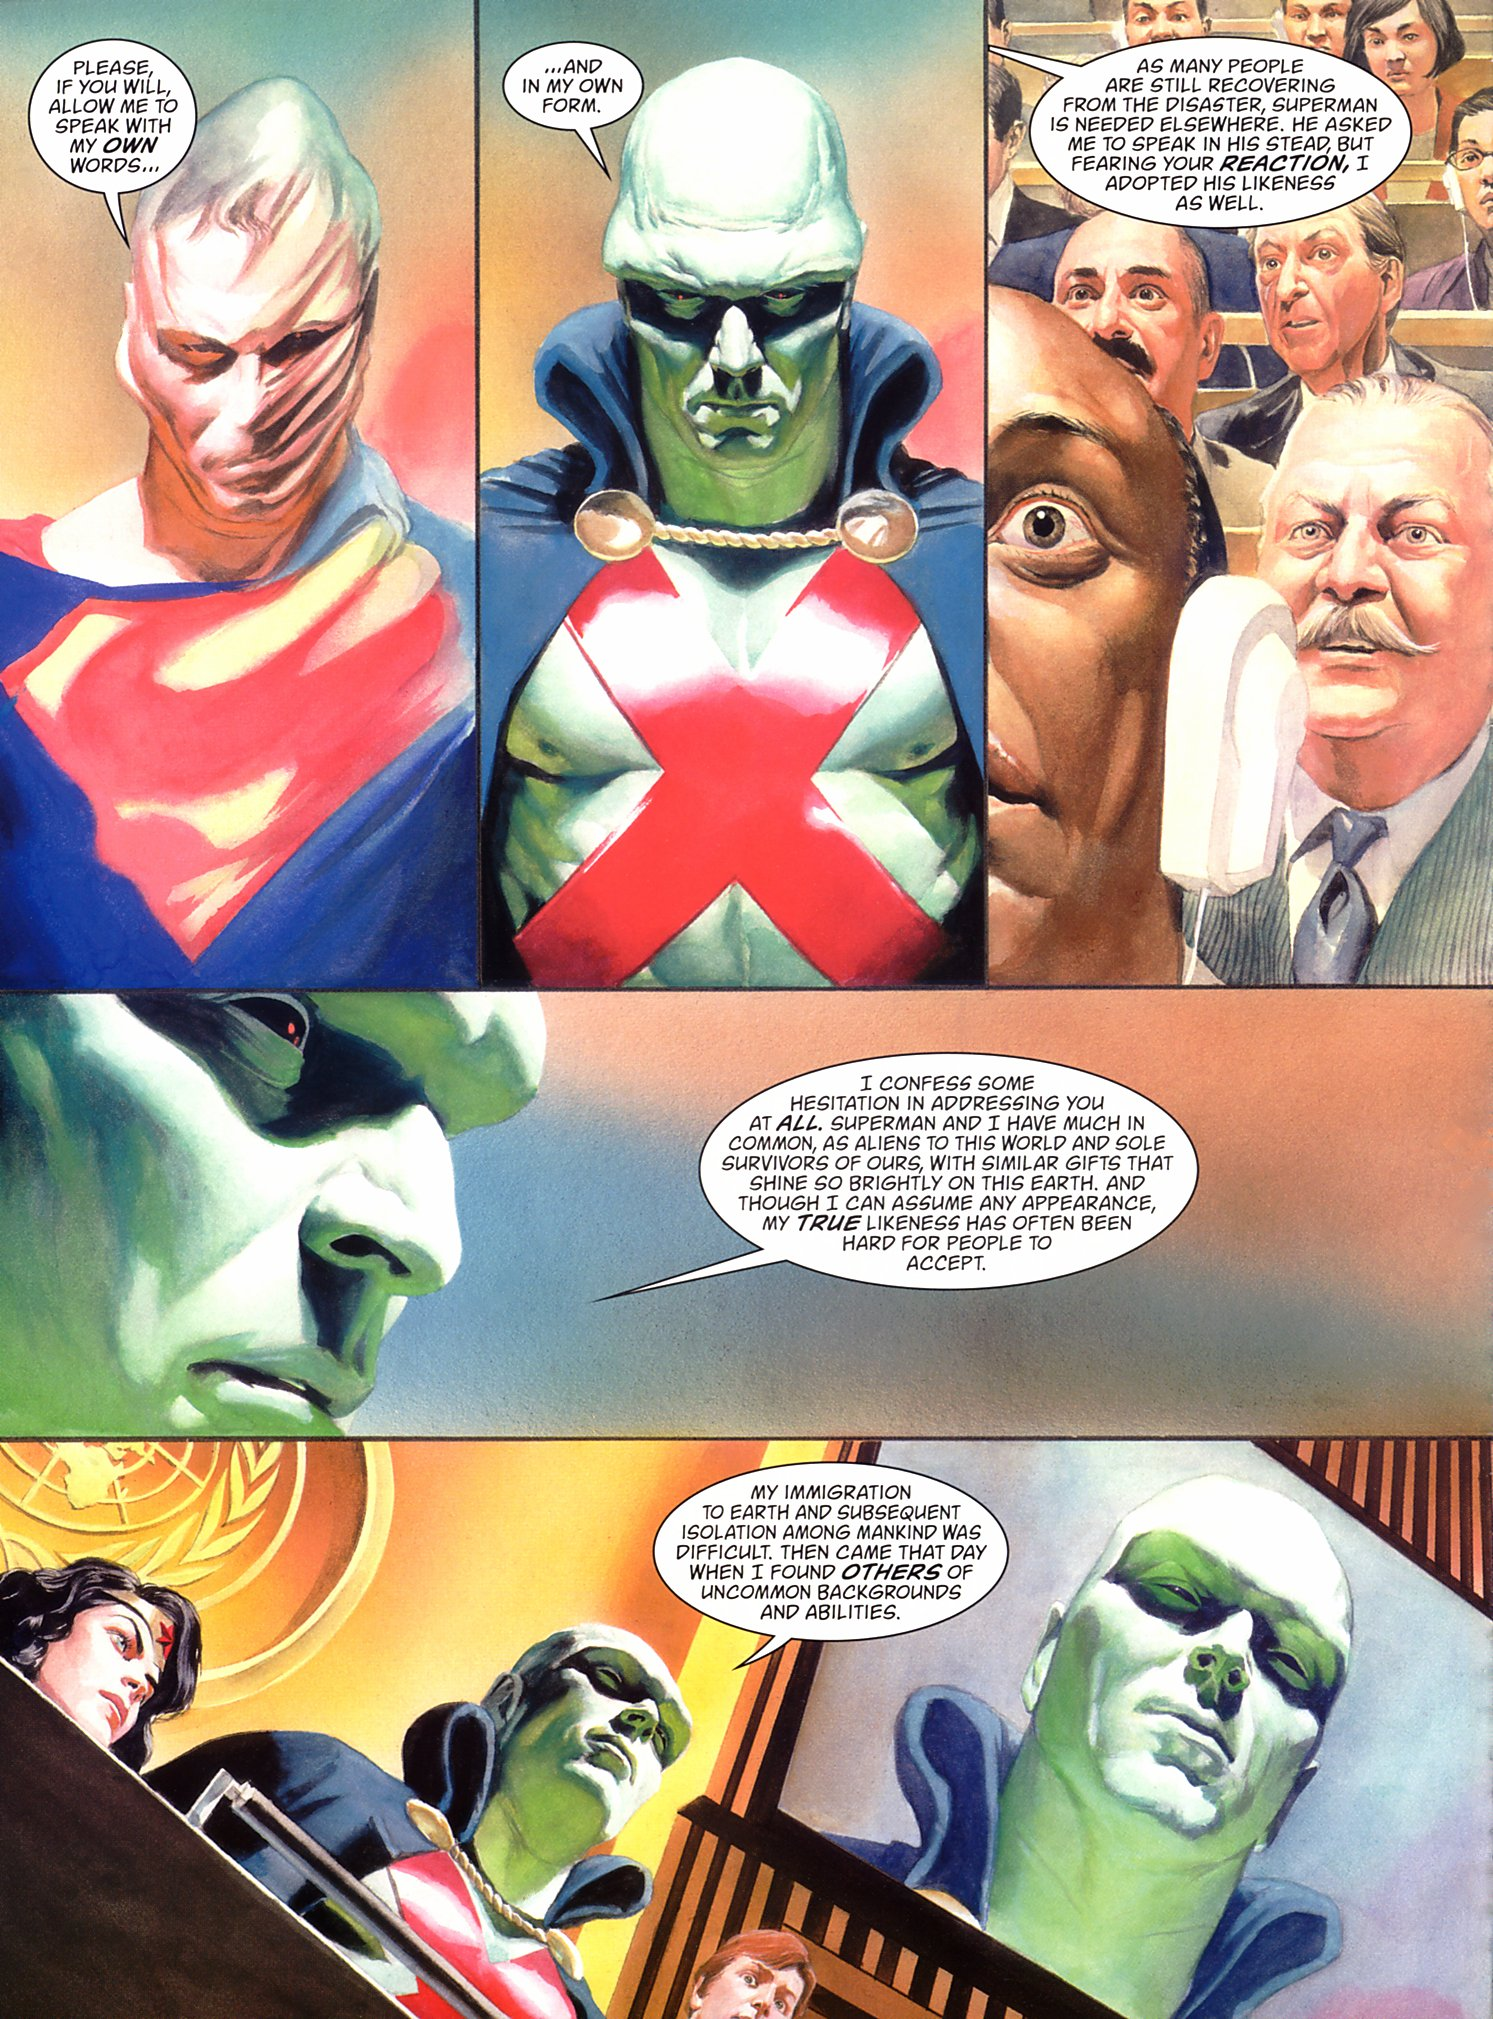 JLA: Liberty and Justice (2003) 1 pg66, art by Alex Ross.